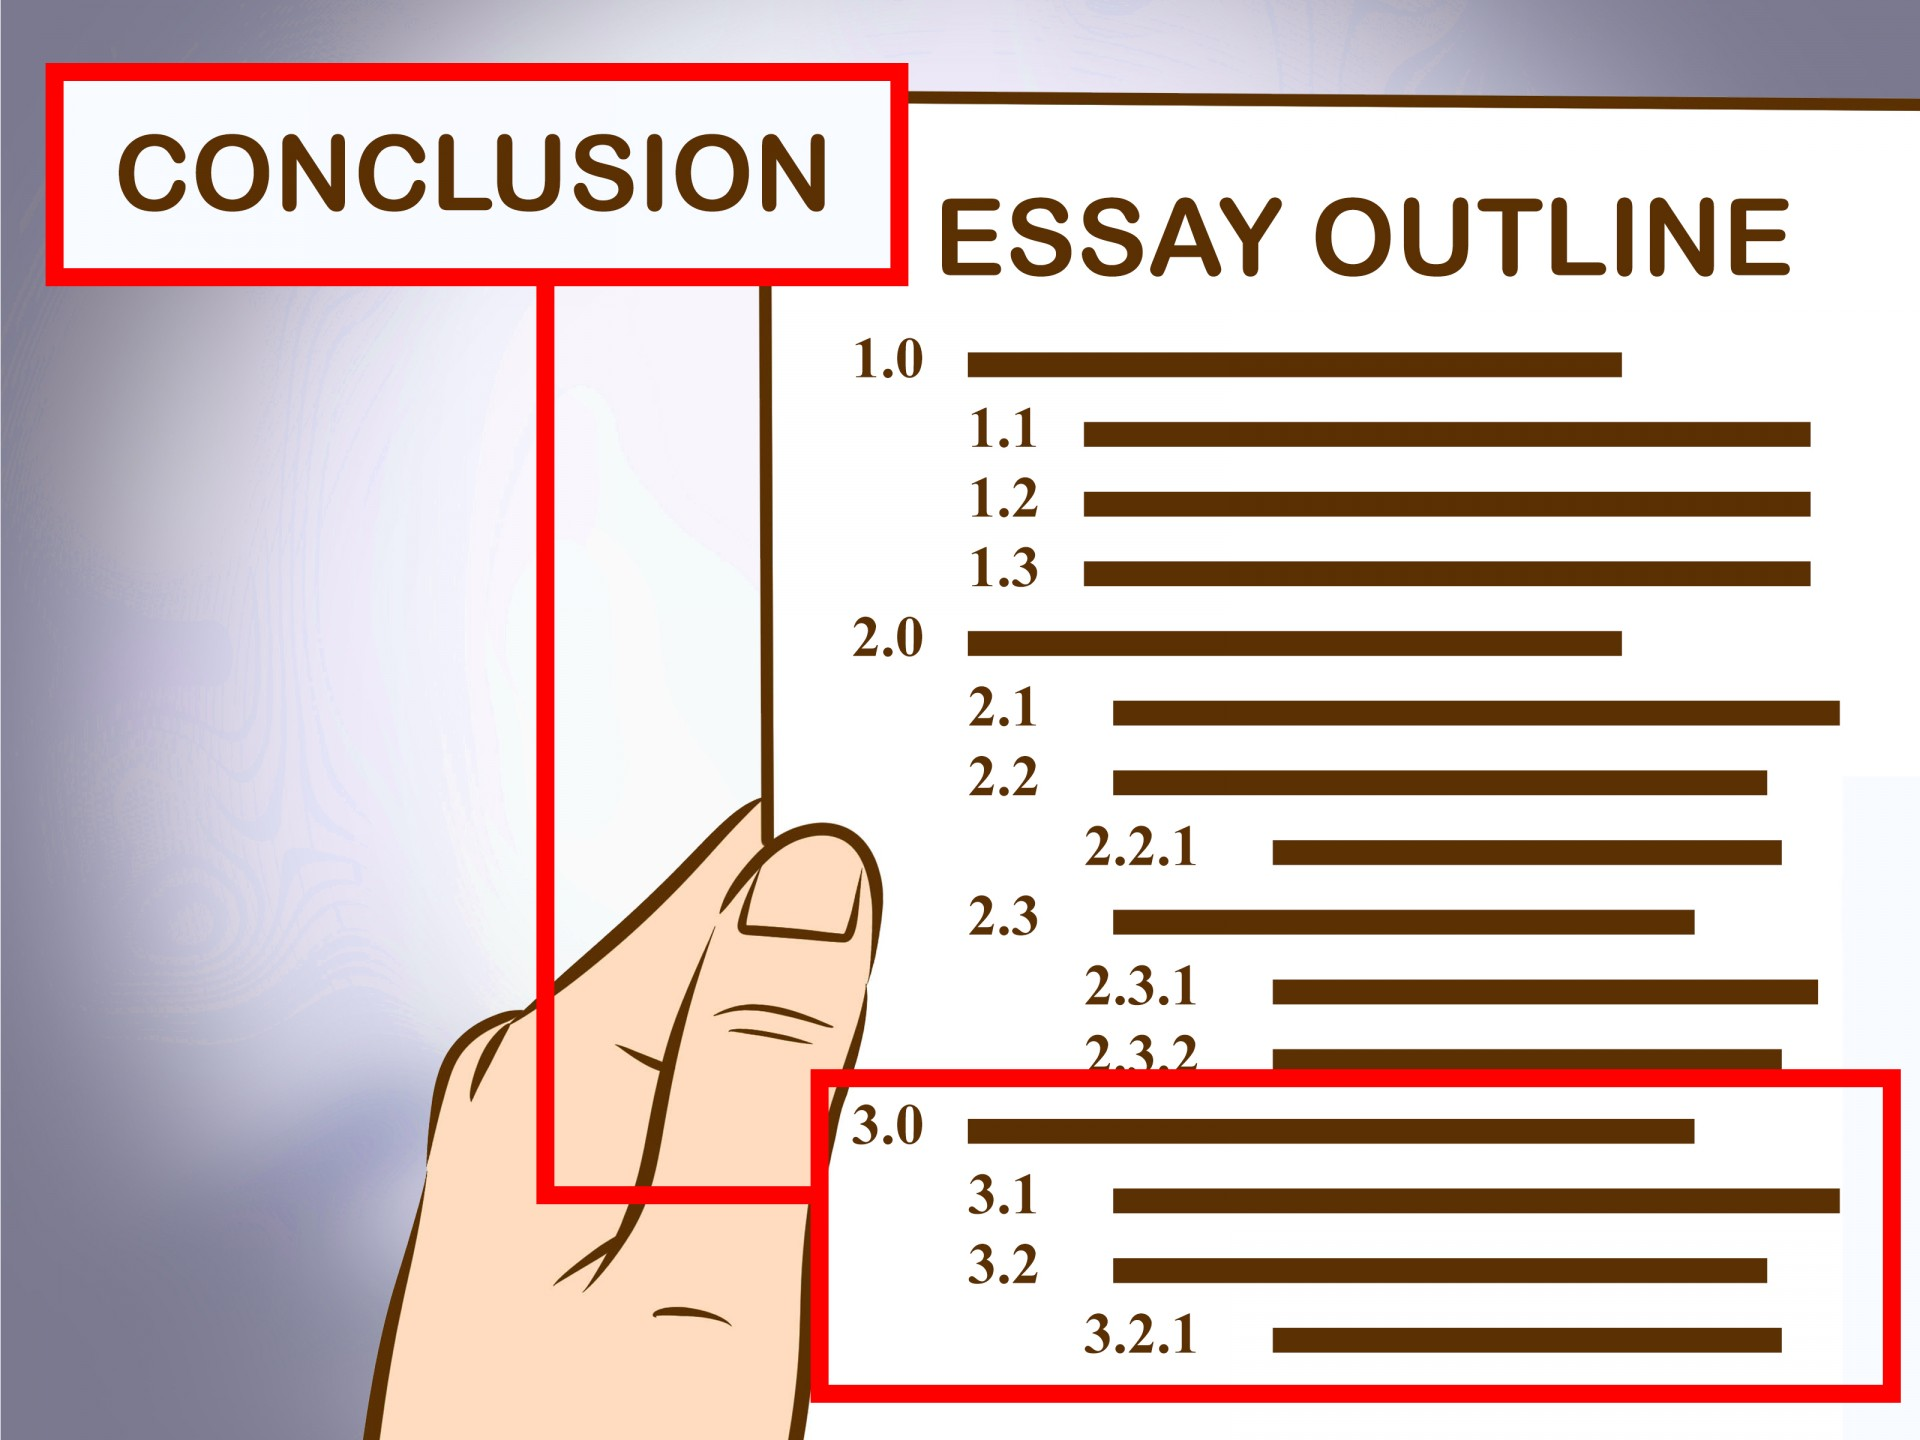 004 Write An Essay Outline Step Version Example How Excellent To For University 6th Grade 1920